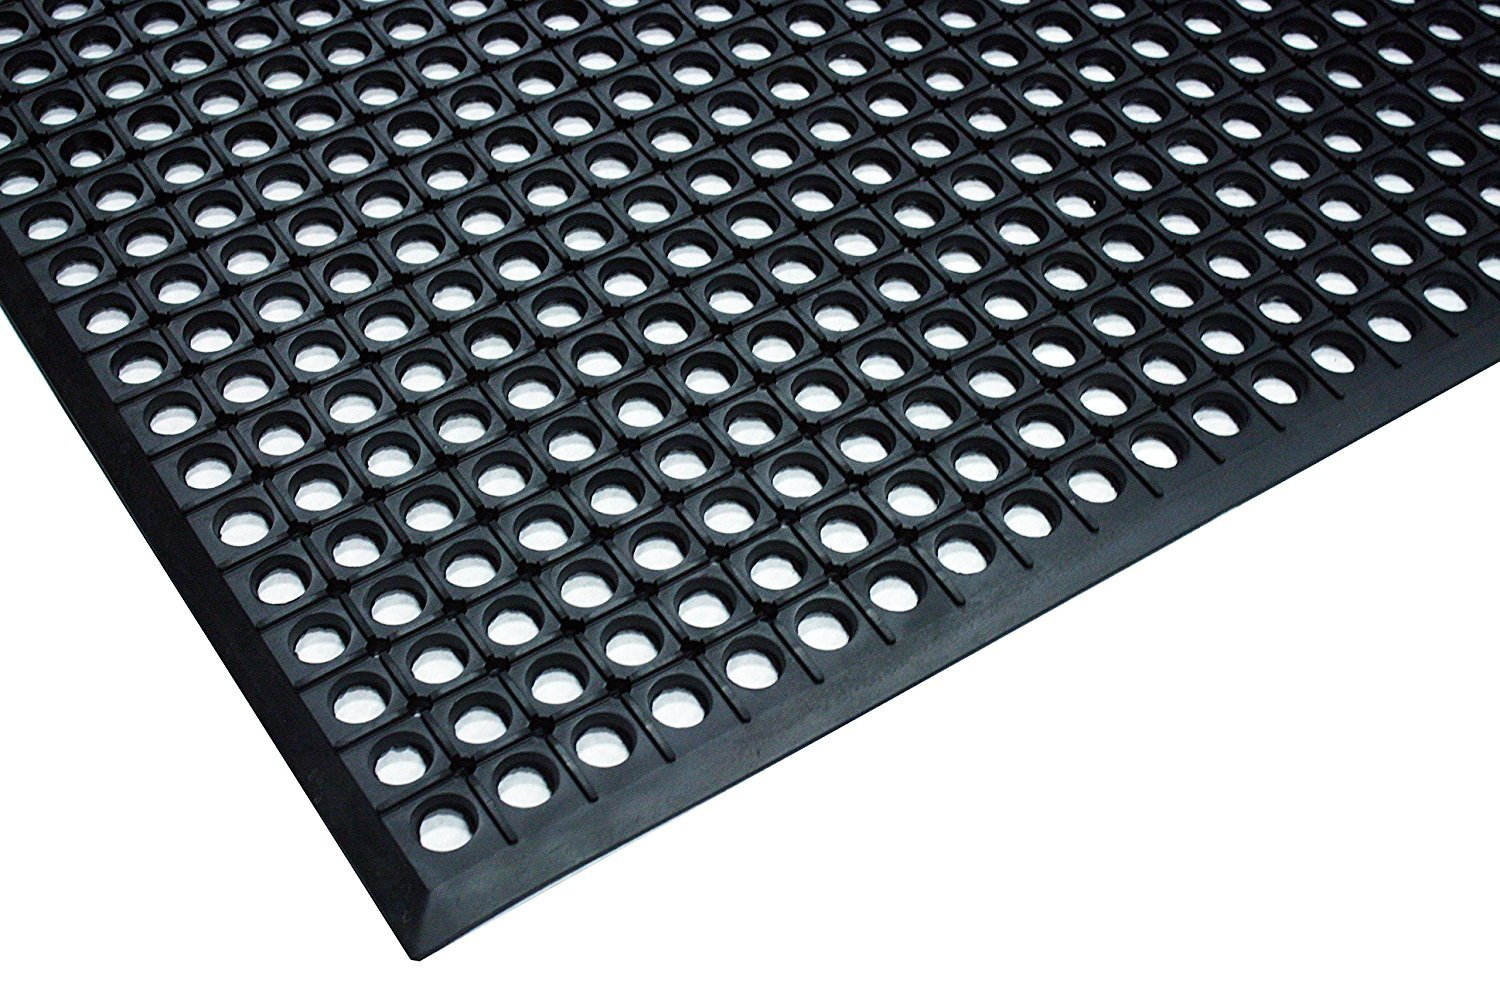 Durable Workstation Light Rubber Anti-Fatigue Drainage Mat for Wet Areas, 3' x 5', Black by Durable Corporation